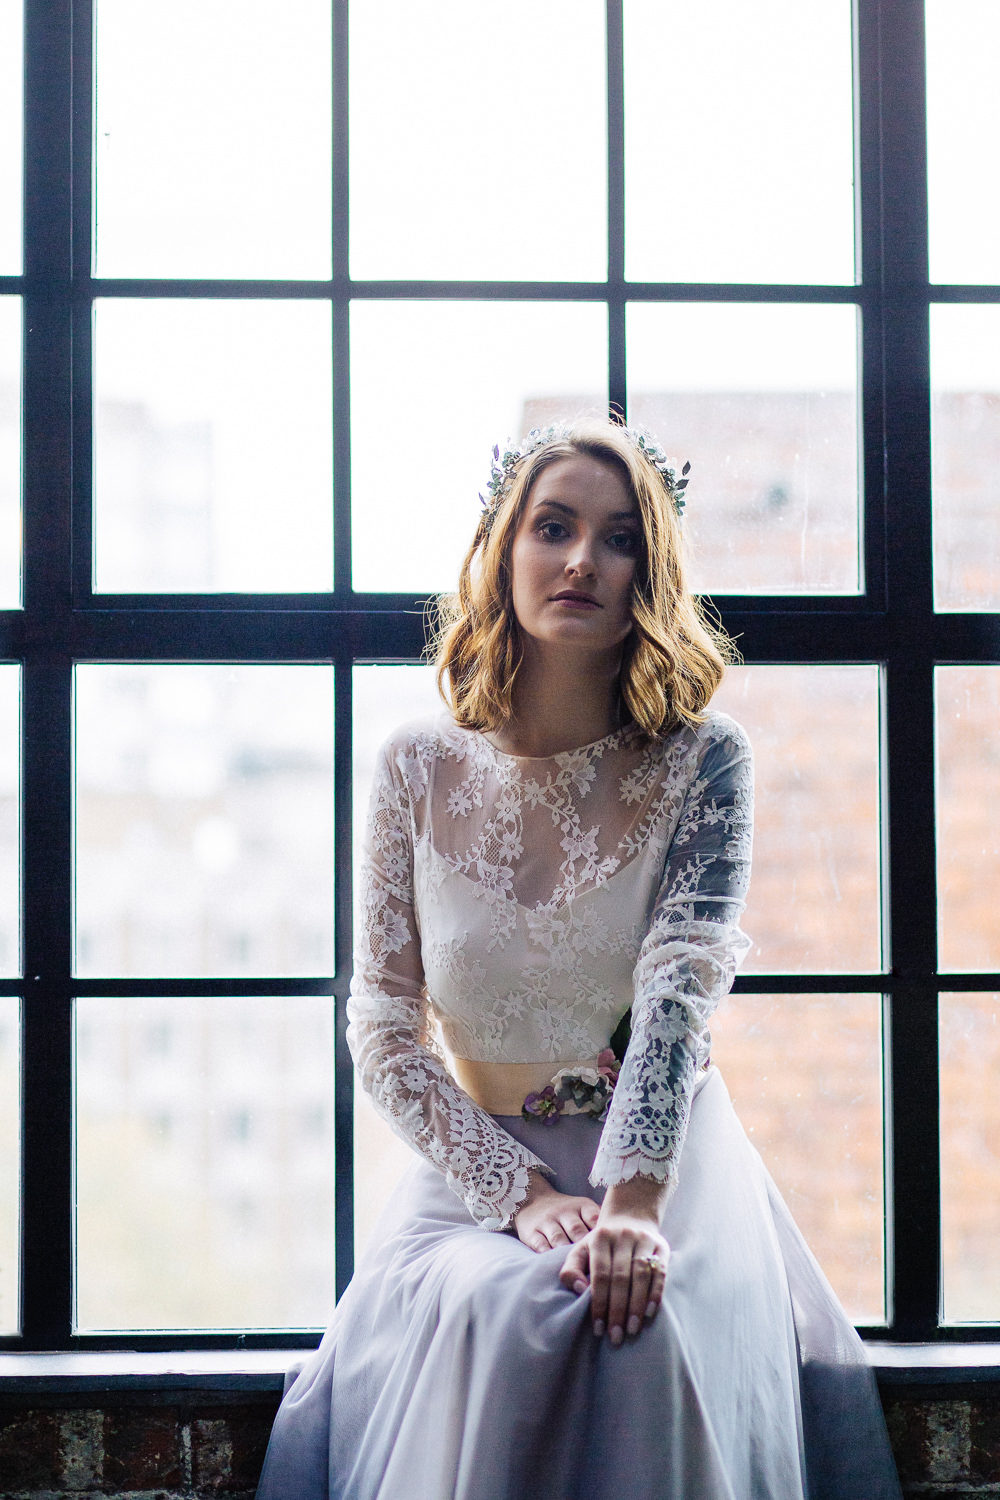 Bride Bridal Dress Gown Embroidery Leaves Berries Sleeves Playful Cool Wedding Ideas Sophie Lake Photography